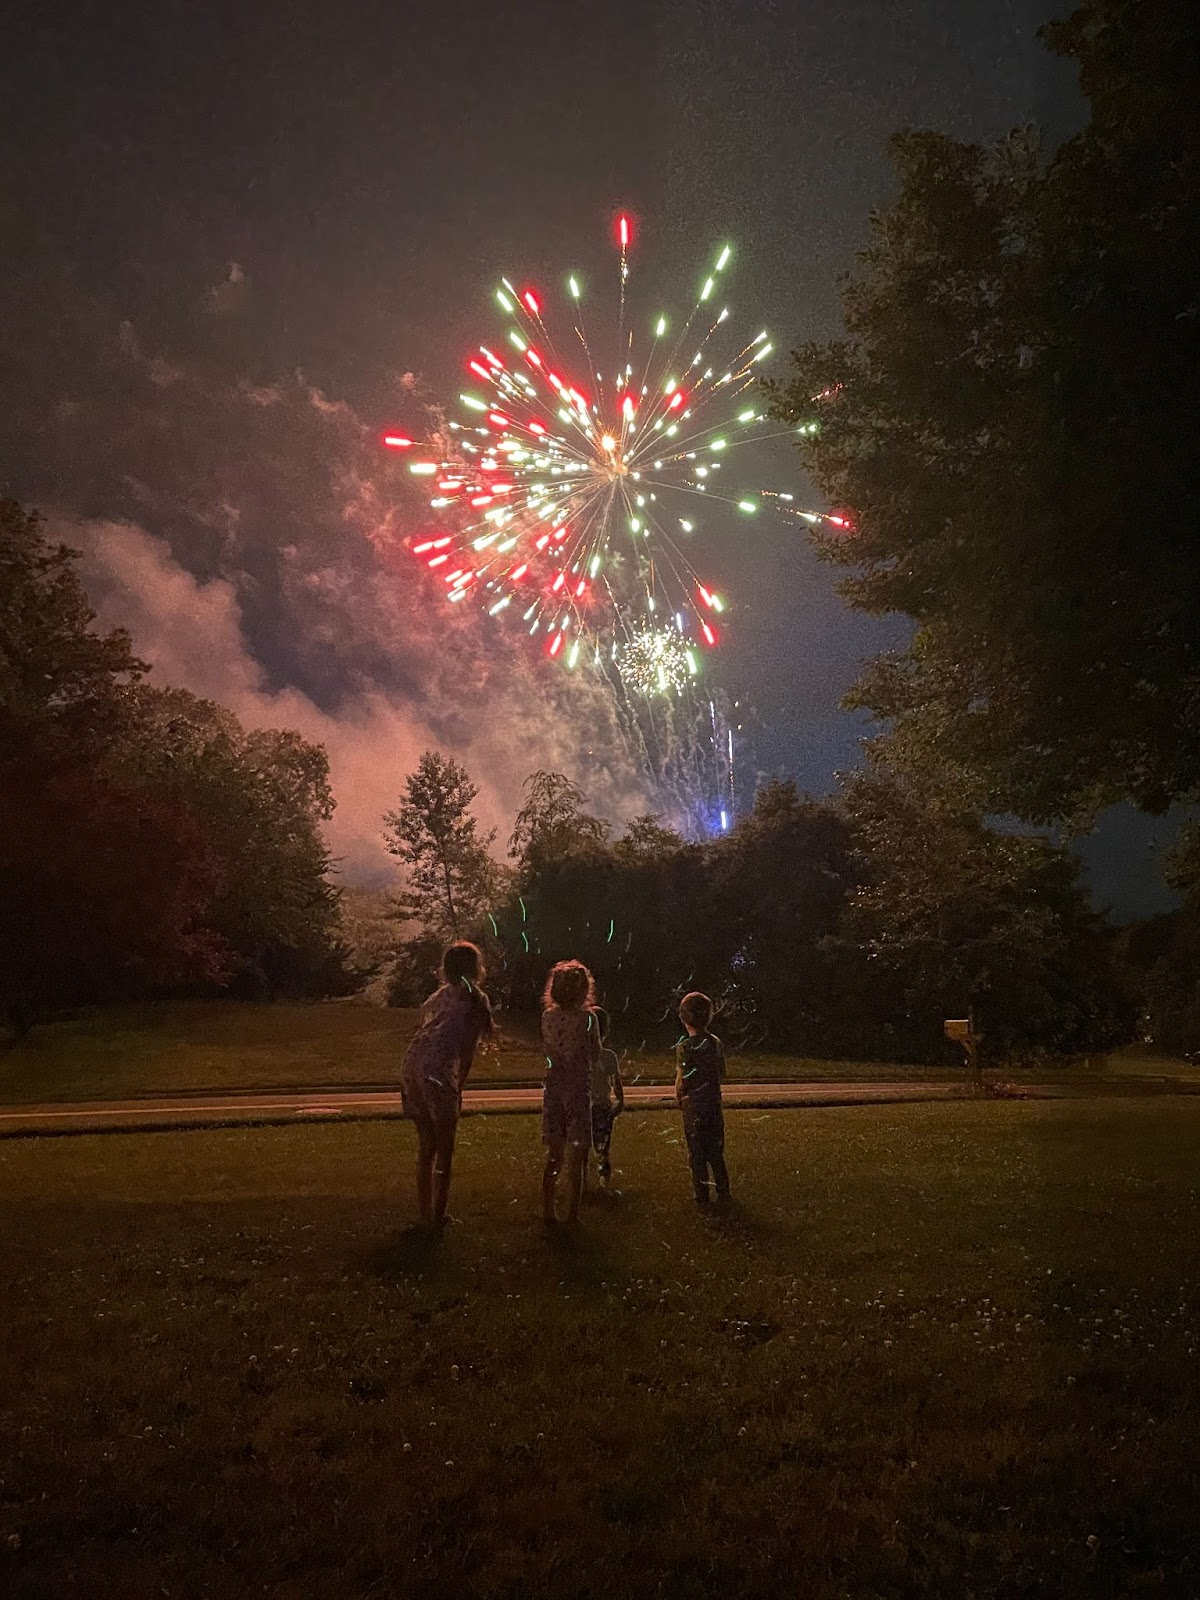 Fireworks to celebrate end of summer